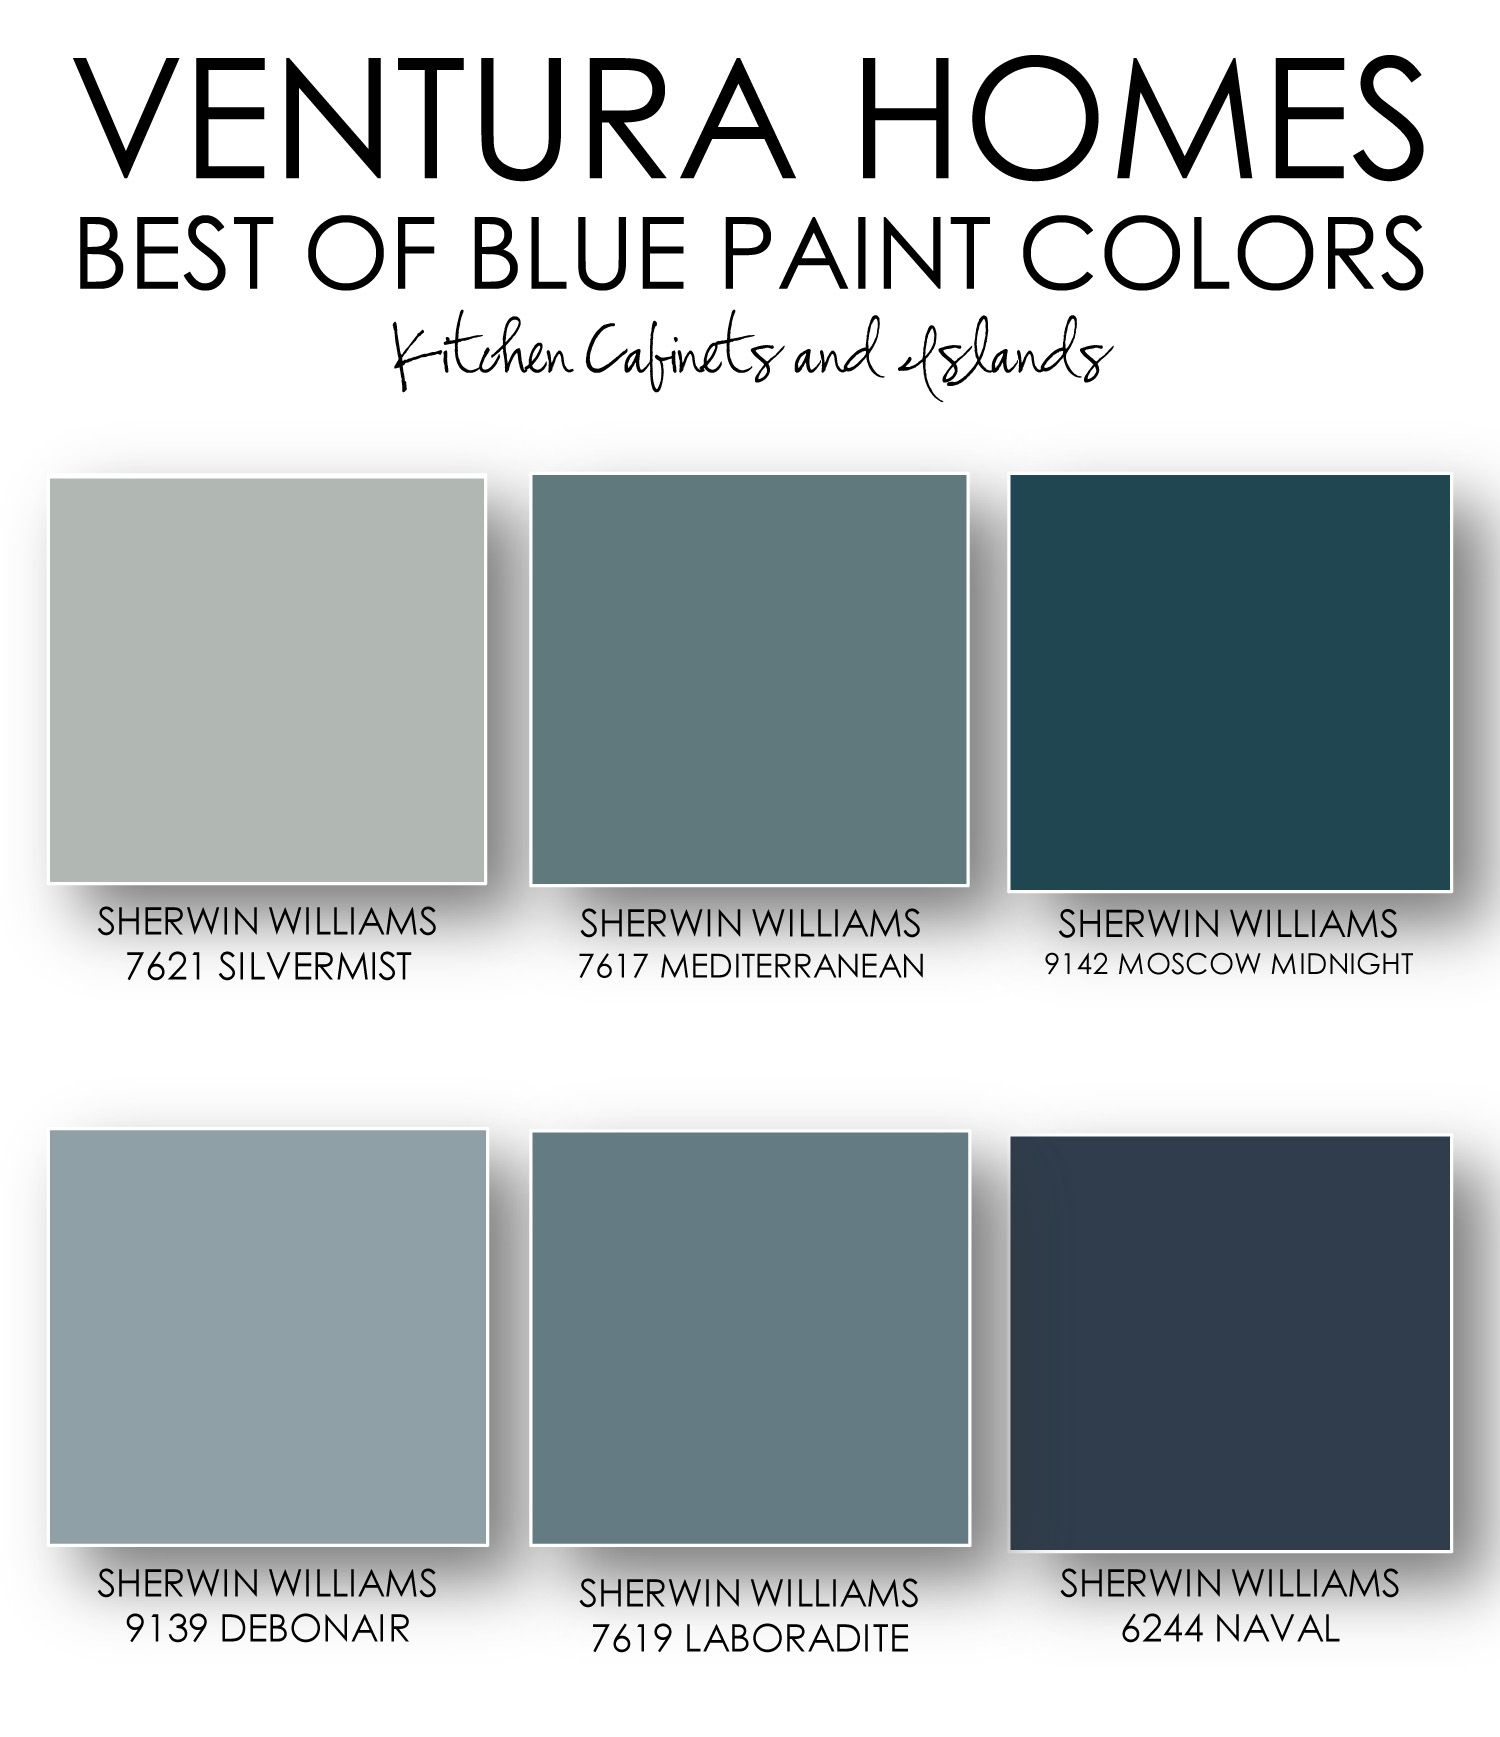 Best Blue Paint on the blog: ventura homes best of blue paint colors / sherwin